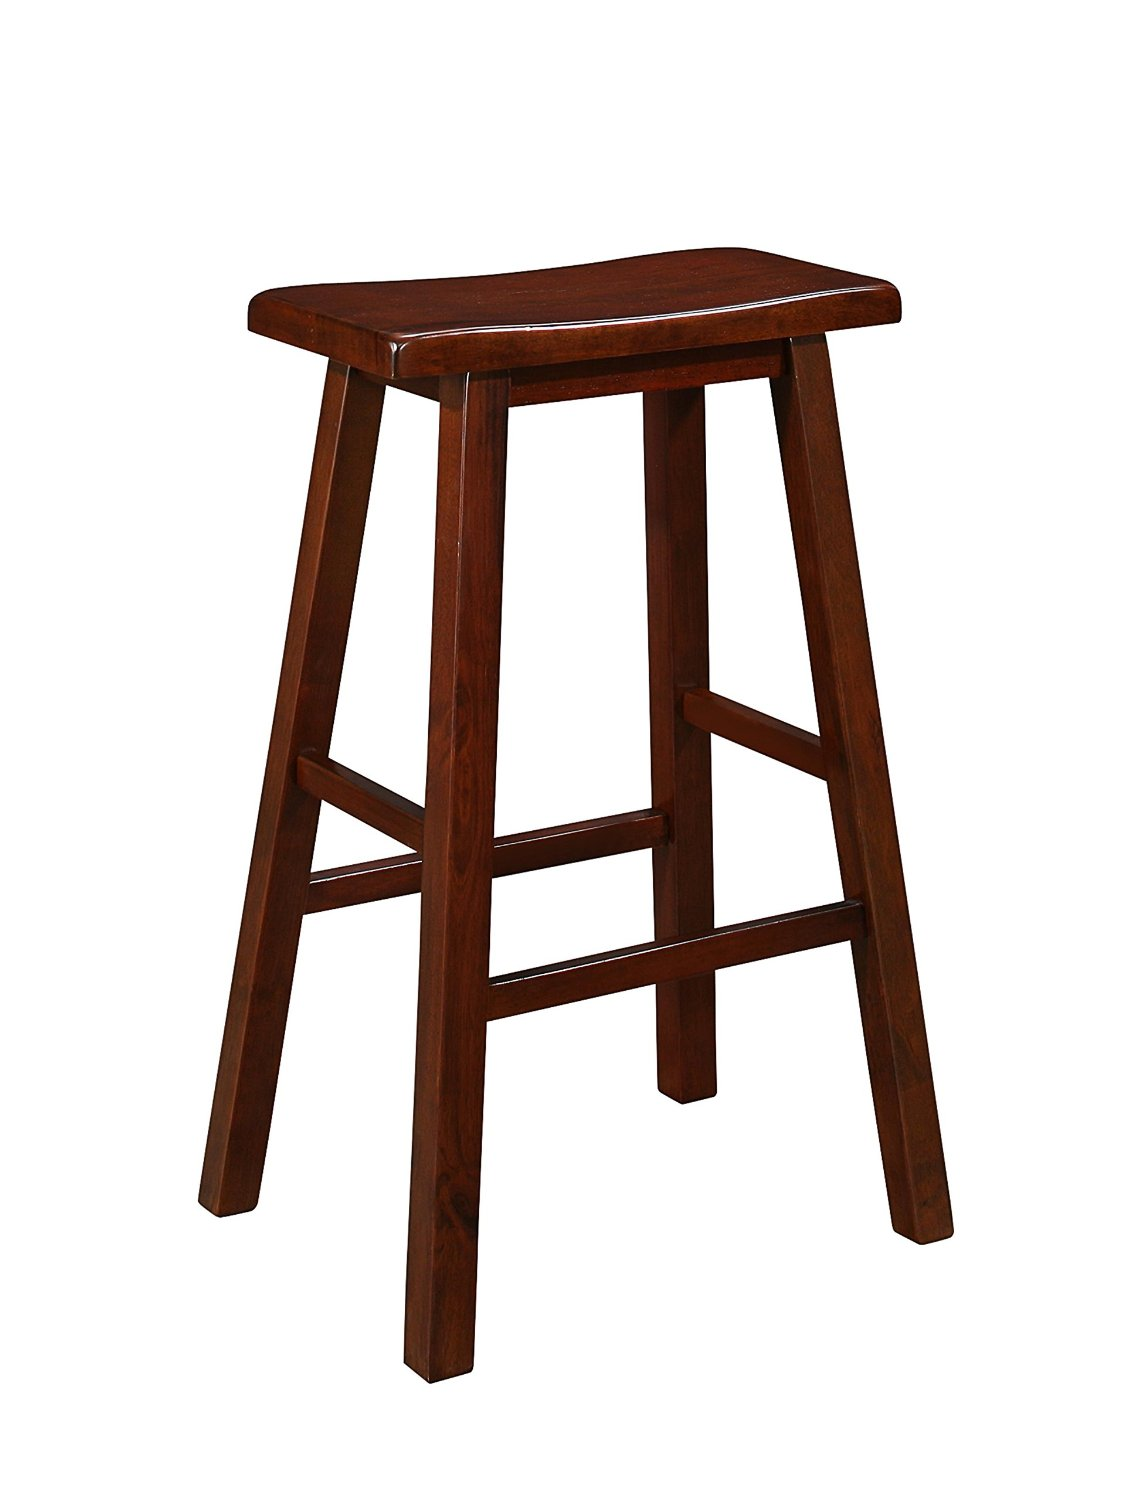 Naomi Home Longmont Wooden Saddle Stool Cherry 29